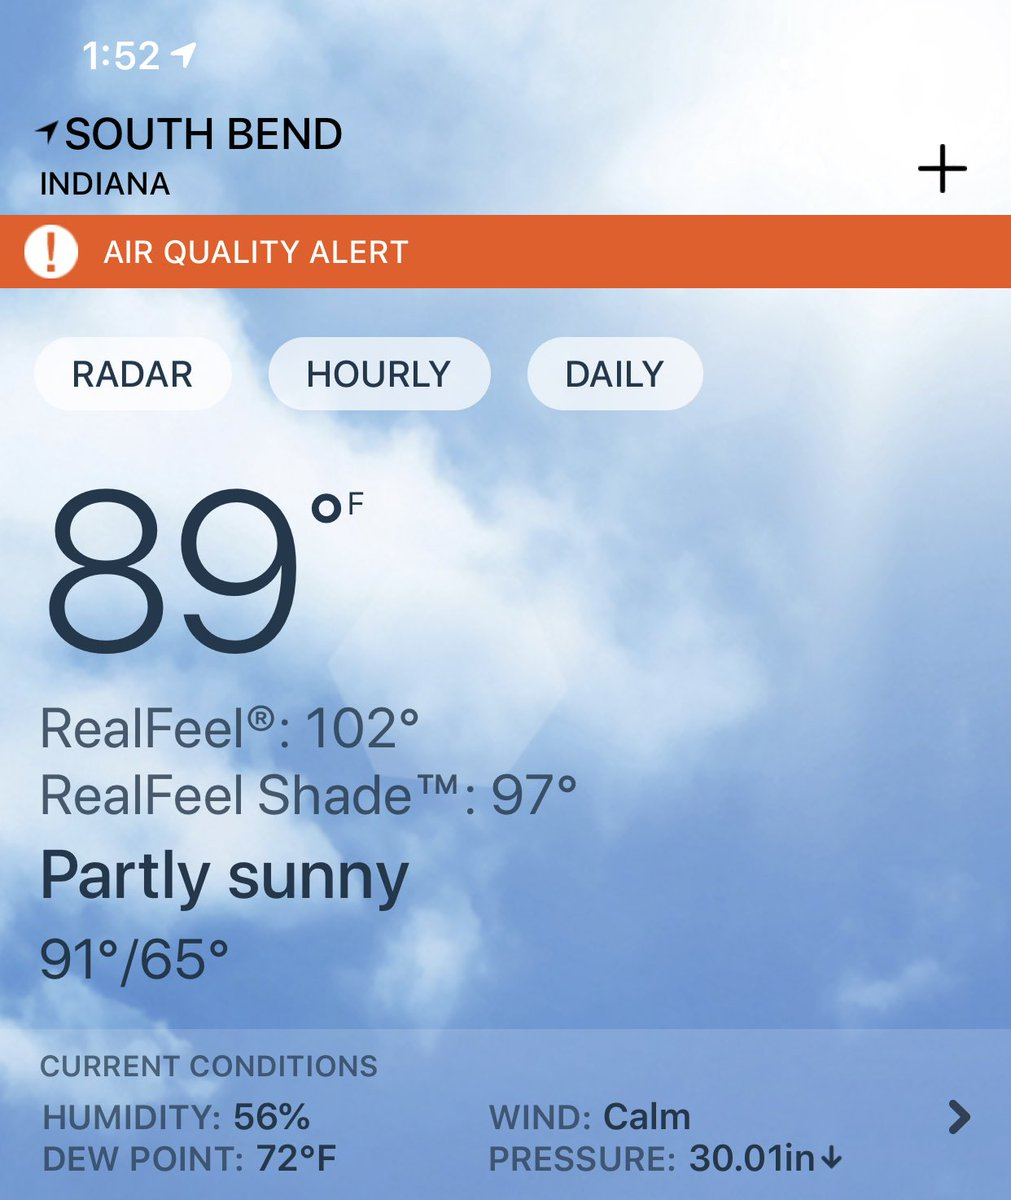 Whew. #southbend #summer